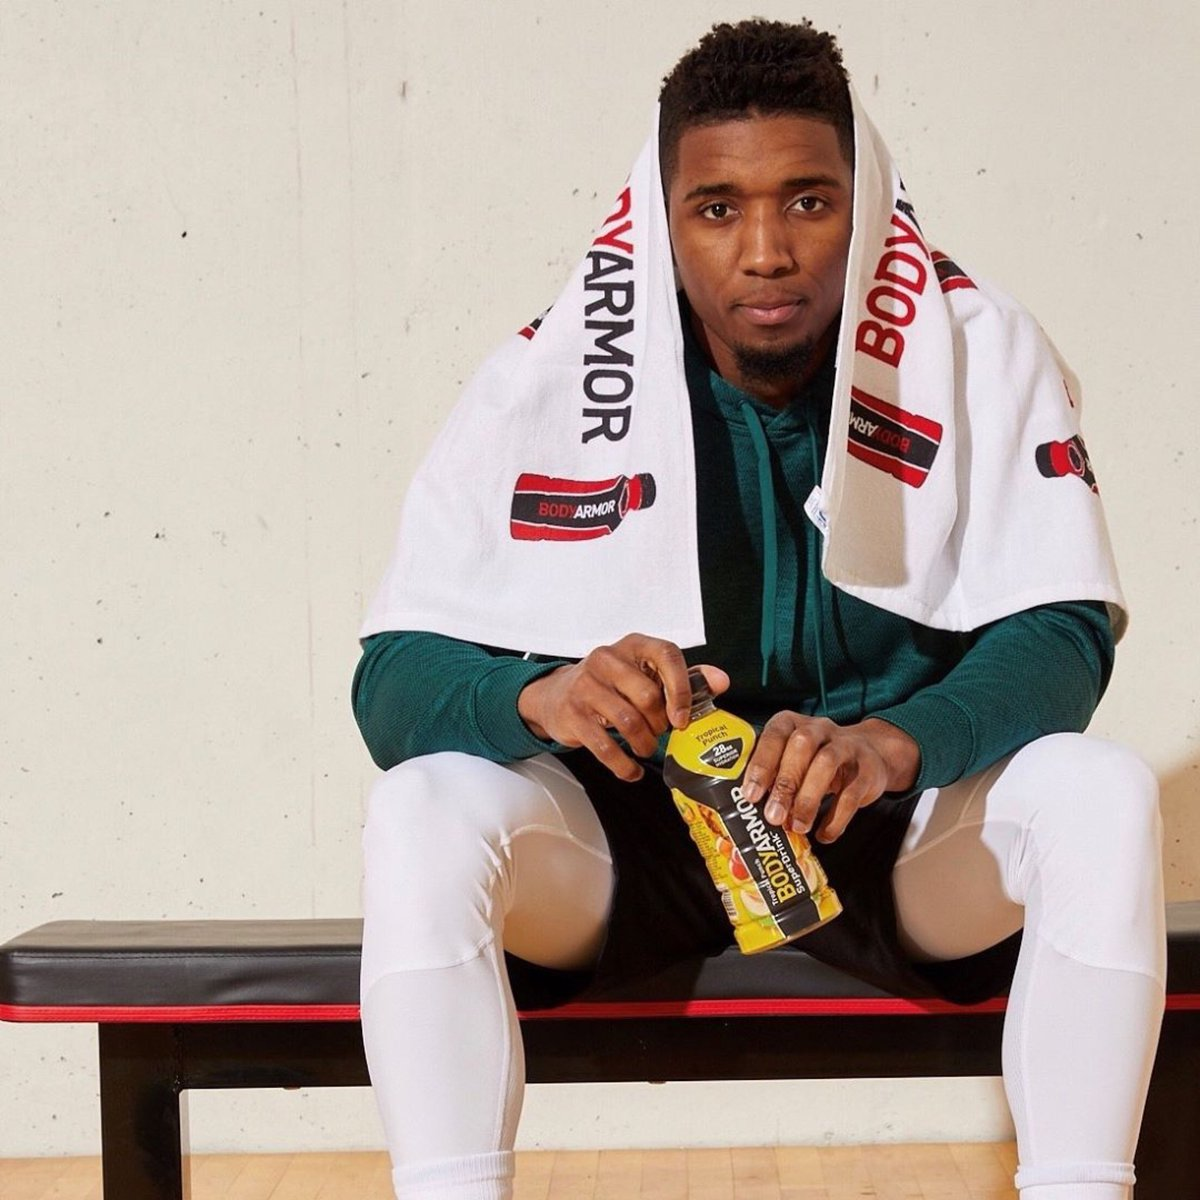 The movement continues.....Welcome @spidadmitchell to the @DrinkBODYARMOR fam! #schwwaaaag